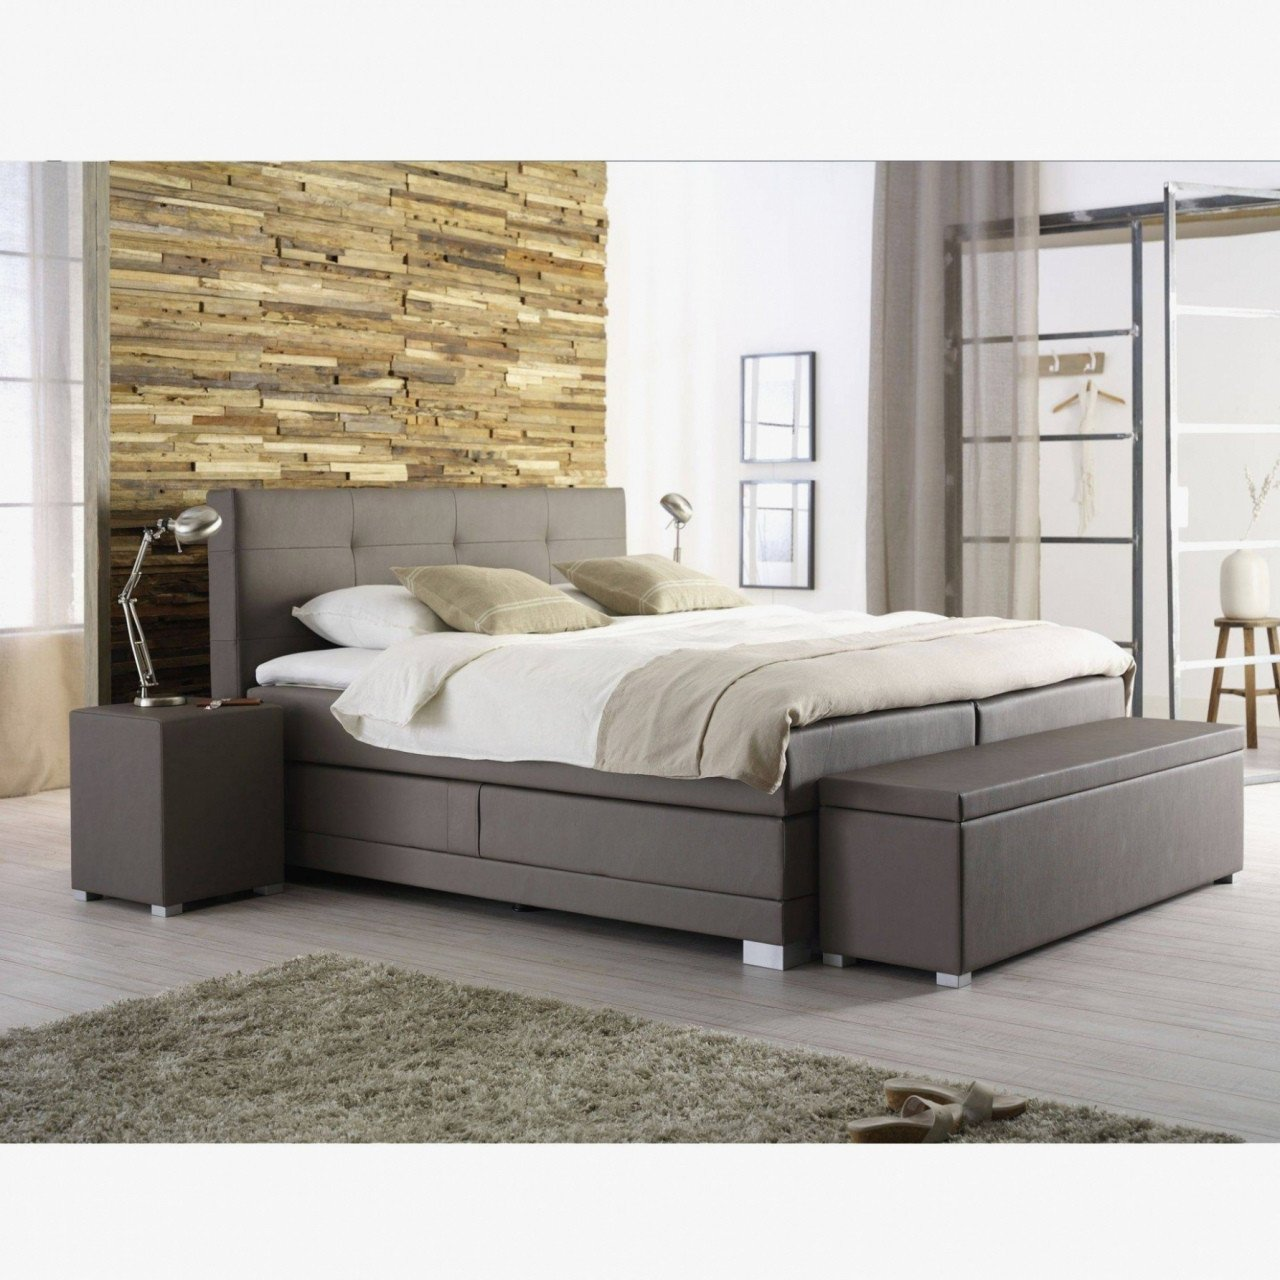 Kids Twin Bedroom Set Awesome Bed with Drawers Under — Procura Home Blog